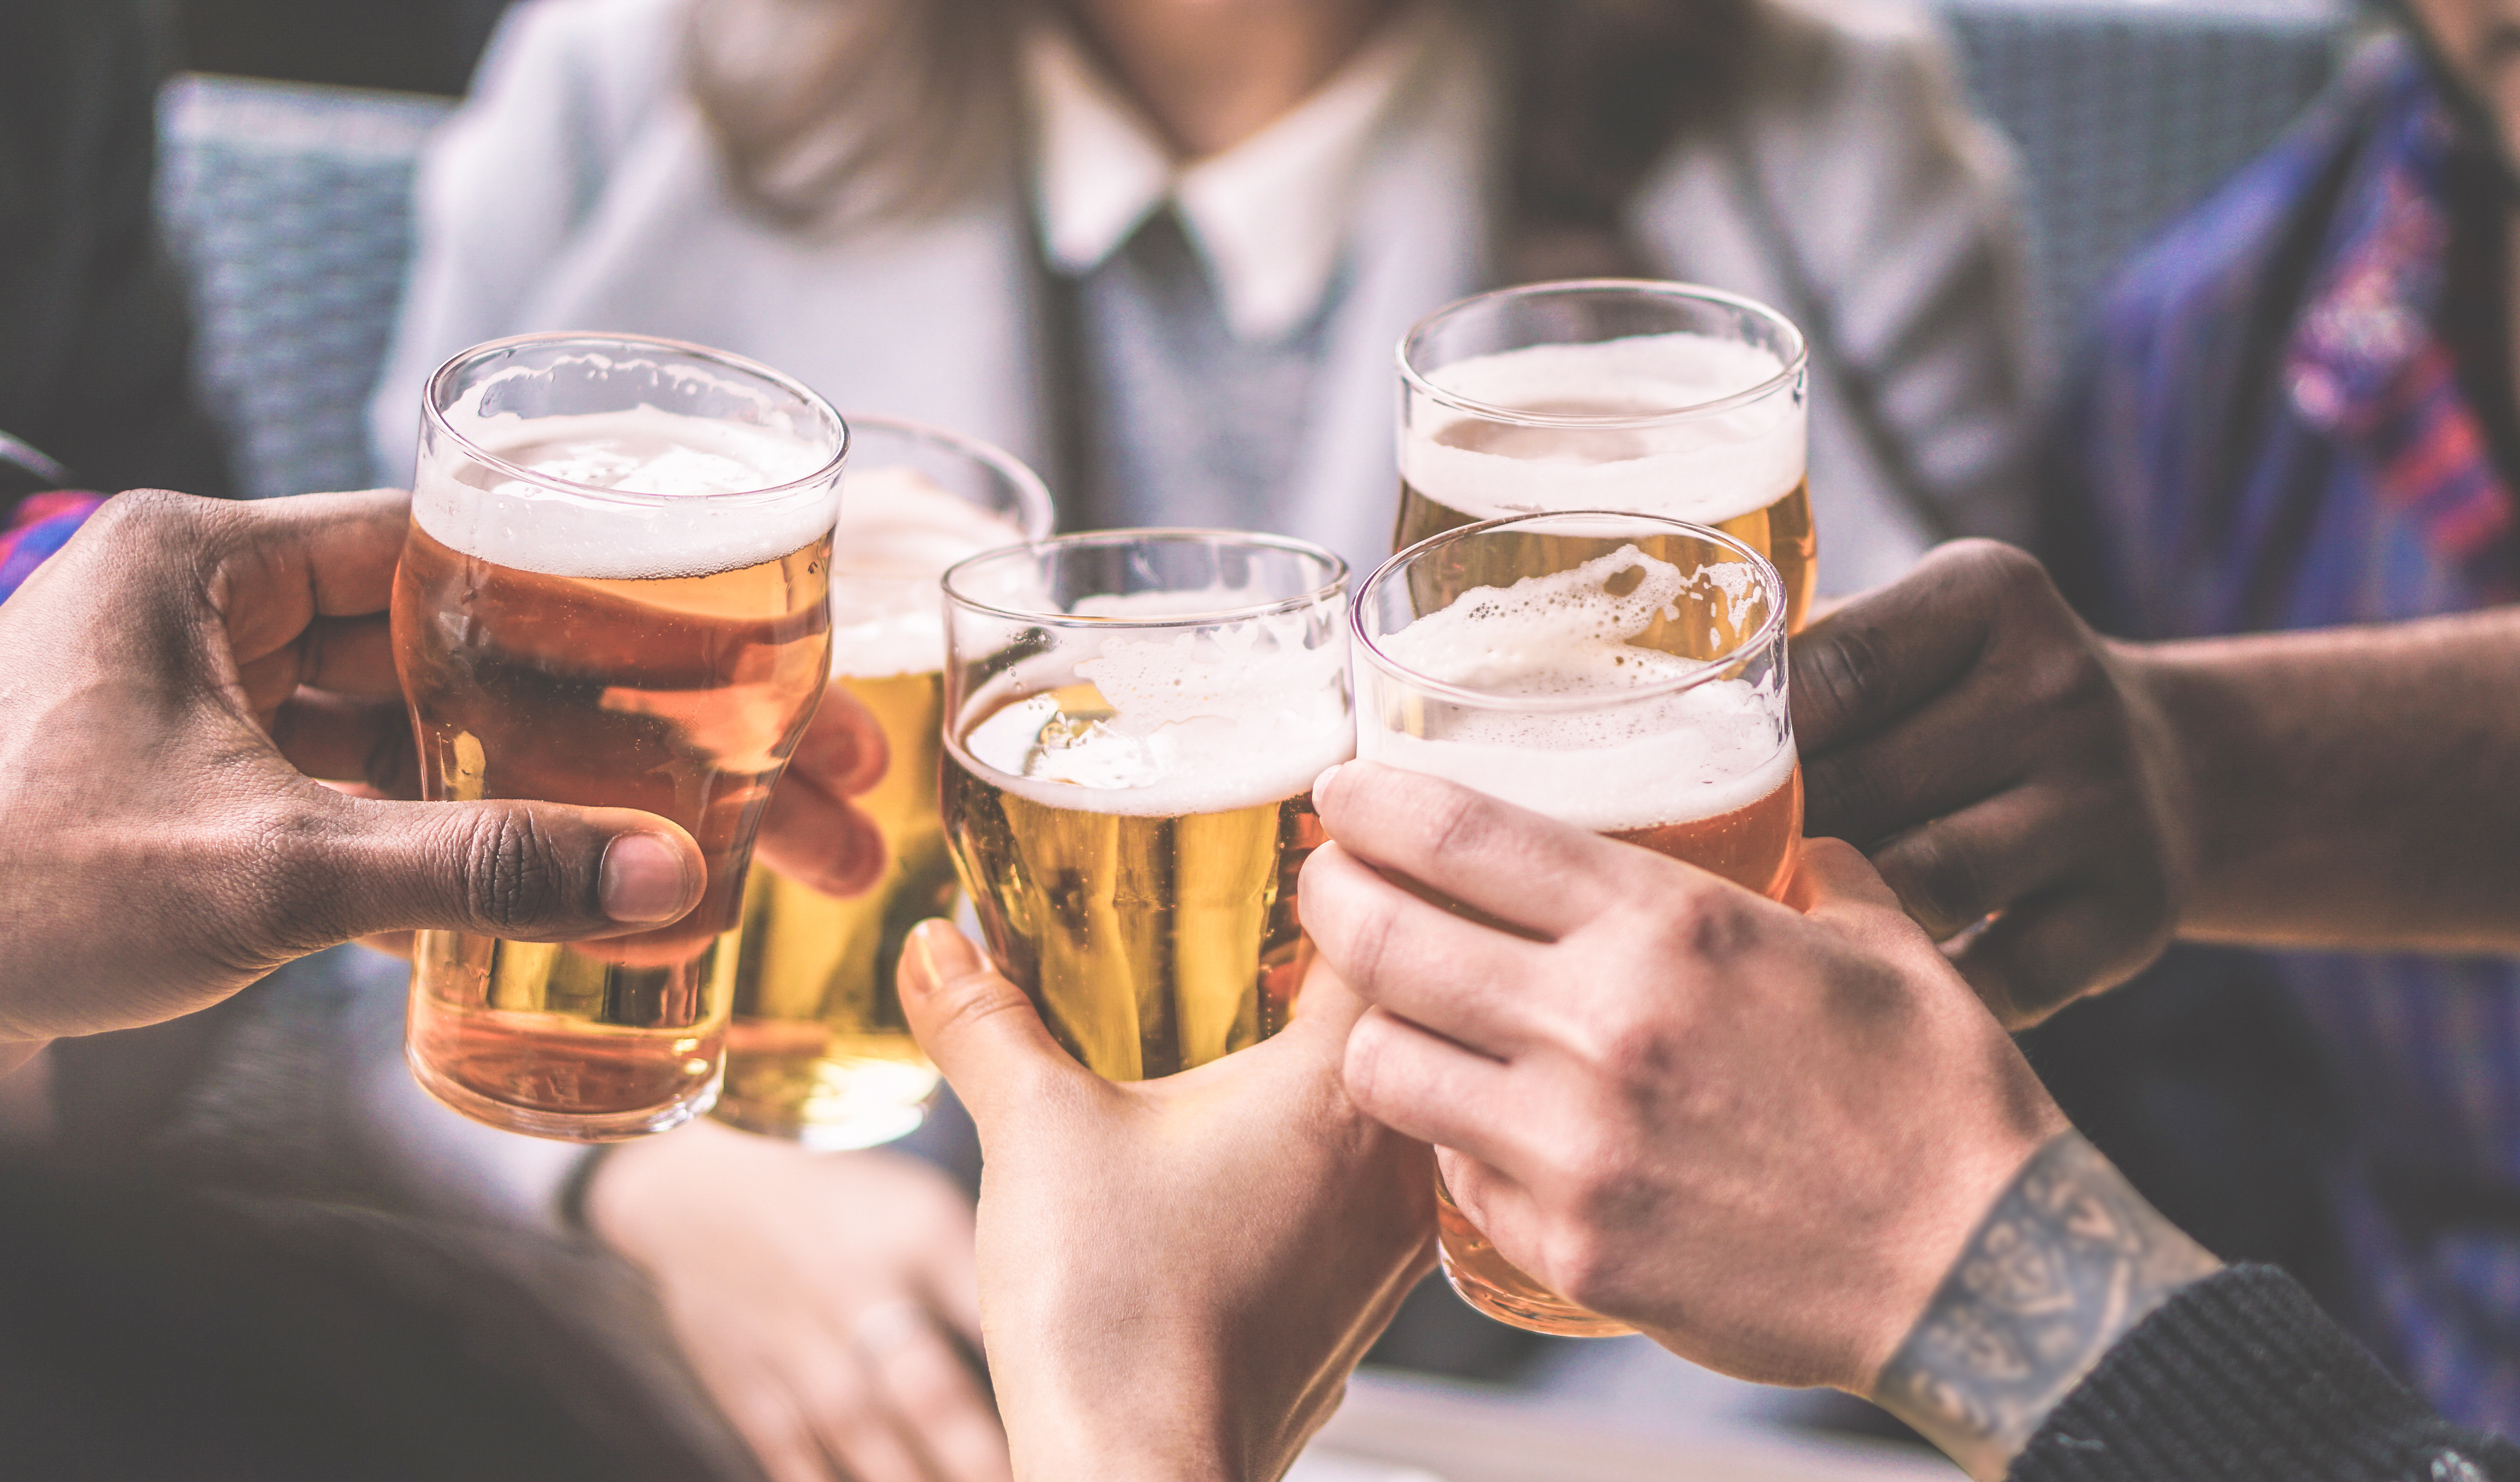 Group Of Friends Enjoying A Beer Glasses In Brewery English Pub Young People Cheering At Bar Restaurant Friendship And Youth Concept Warm Vintage Filter Main Focus On Left Black Hand